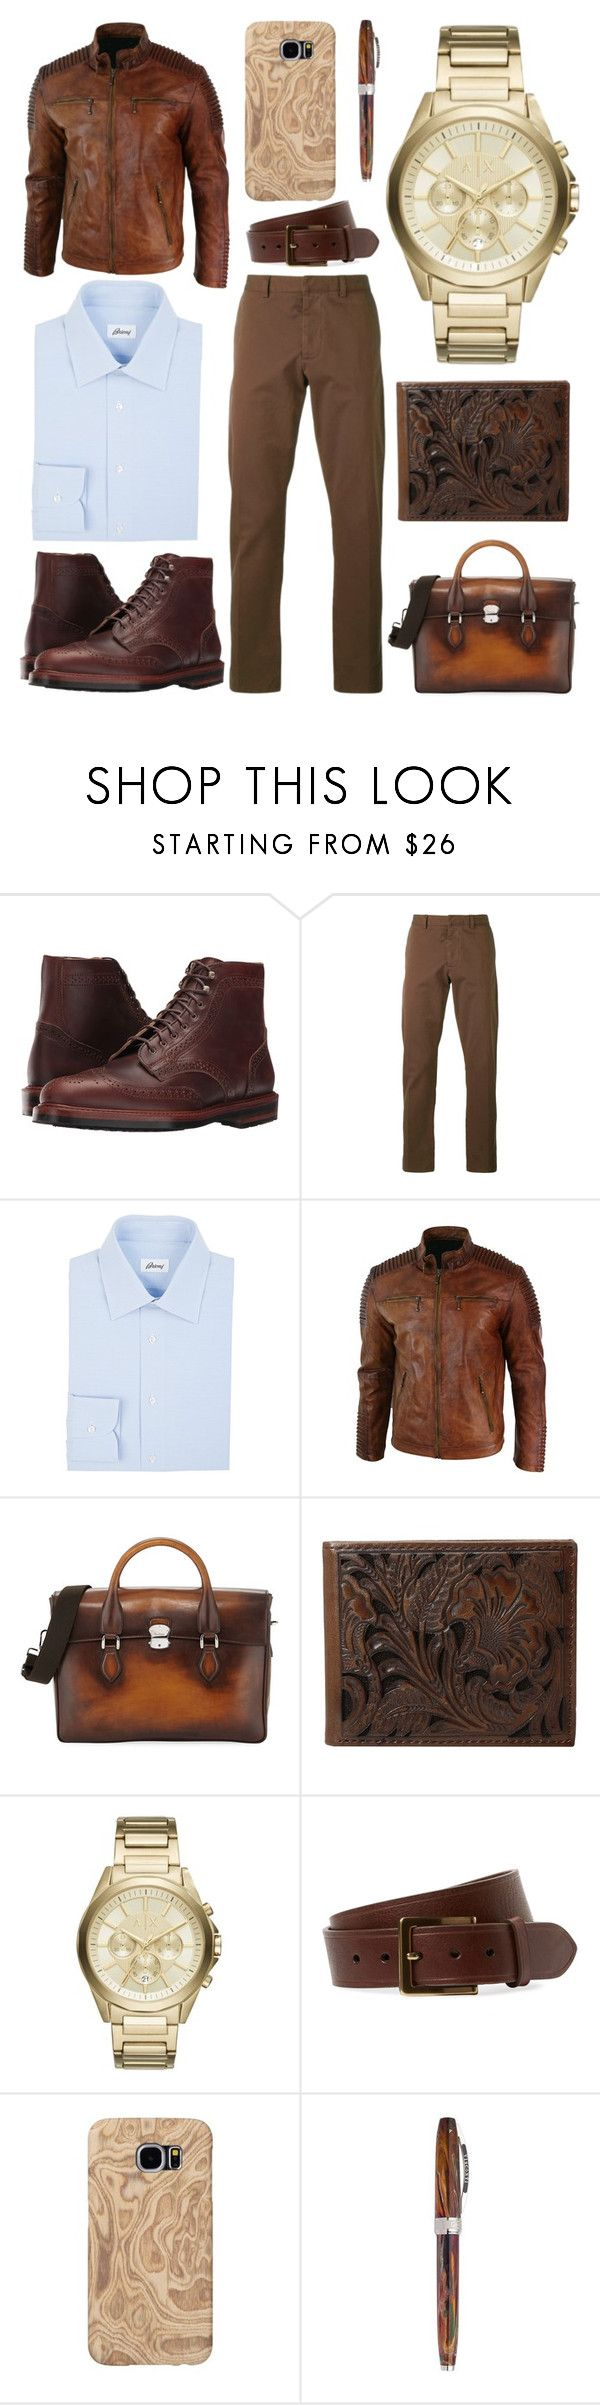 """""""Blue and Brown"""" by creation-gallery on Polyvore featuring Eastland, AMI, Brioni, Berluti, Ariat, Armani Exchange, Bryant Park, Samsung, Visconti and men's fashion"""